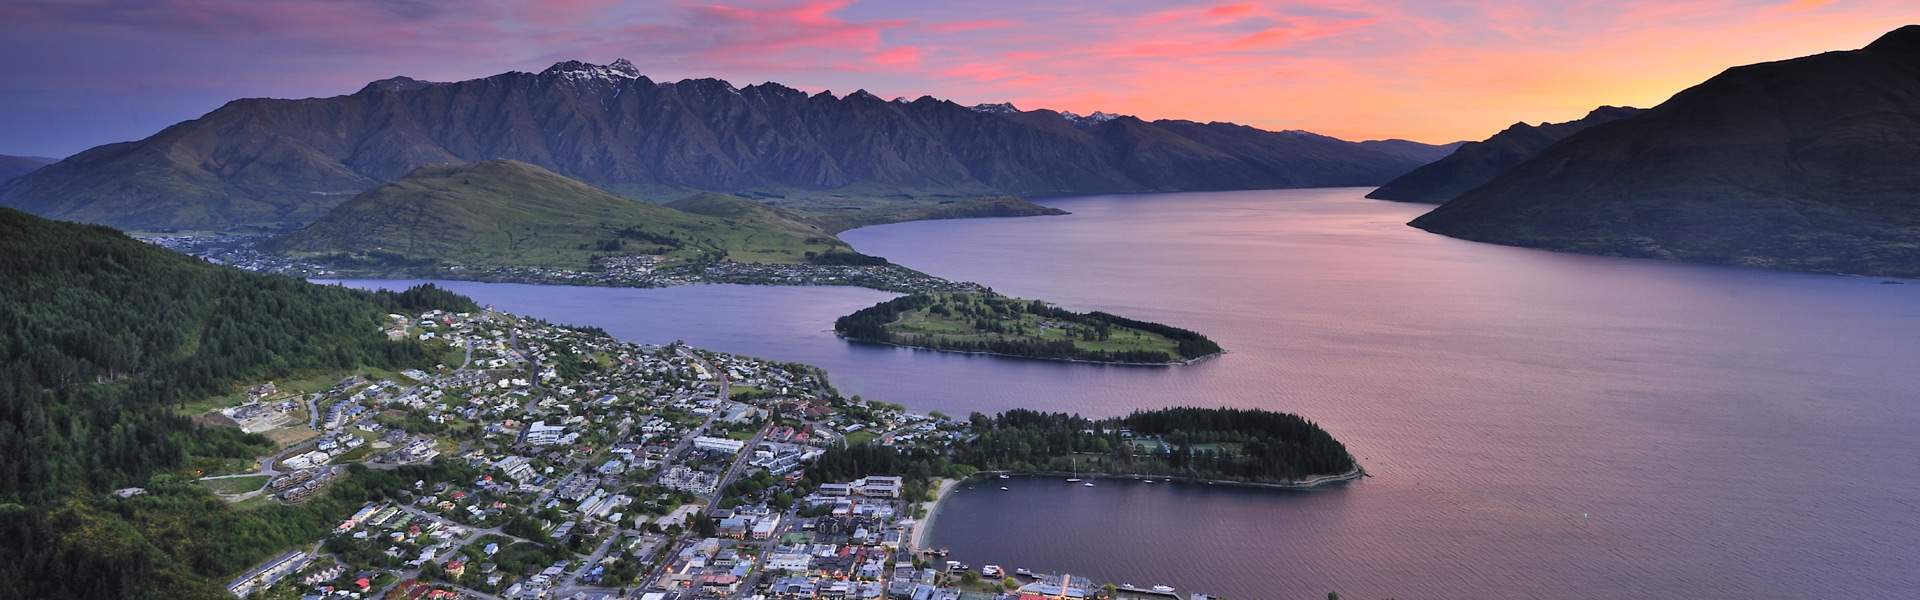 Grand Tour of New Zealand Tour | Wendy Wu Tours